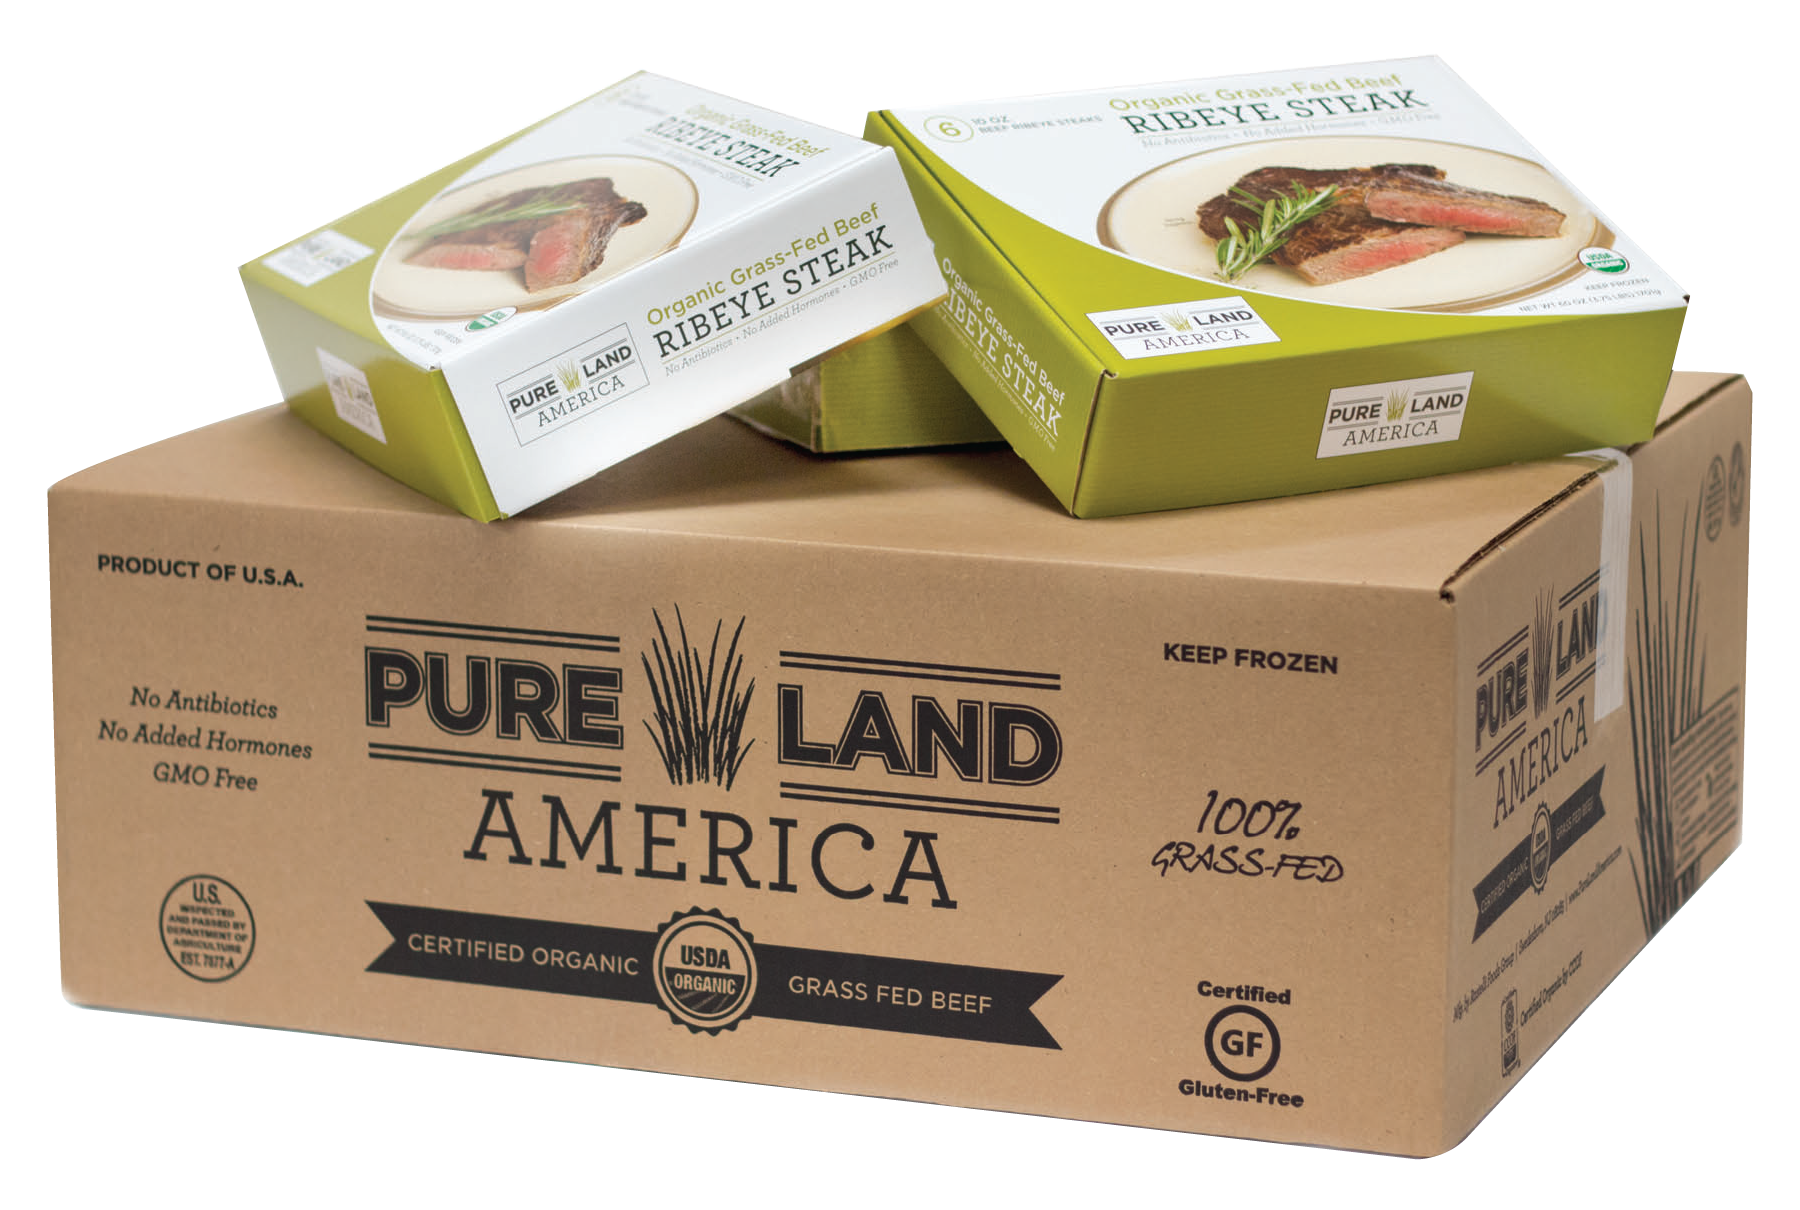 organic grass fed ribeye steaks delivery to grocery store